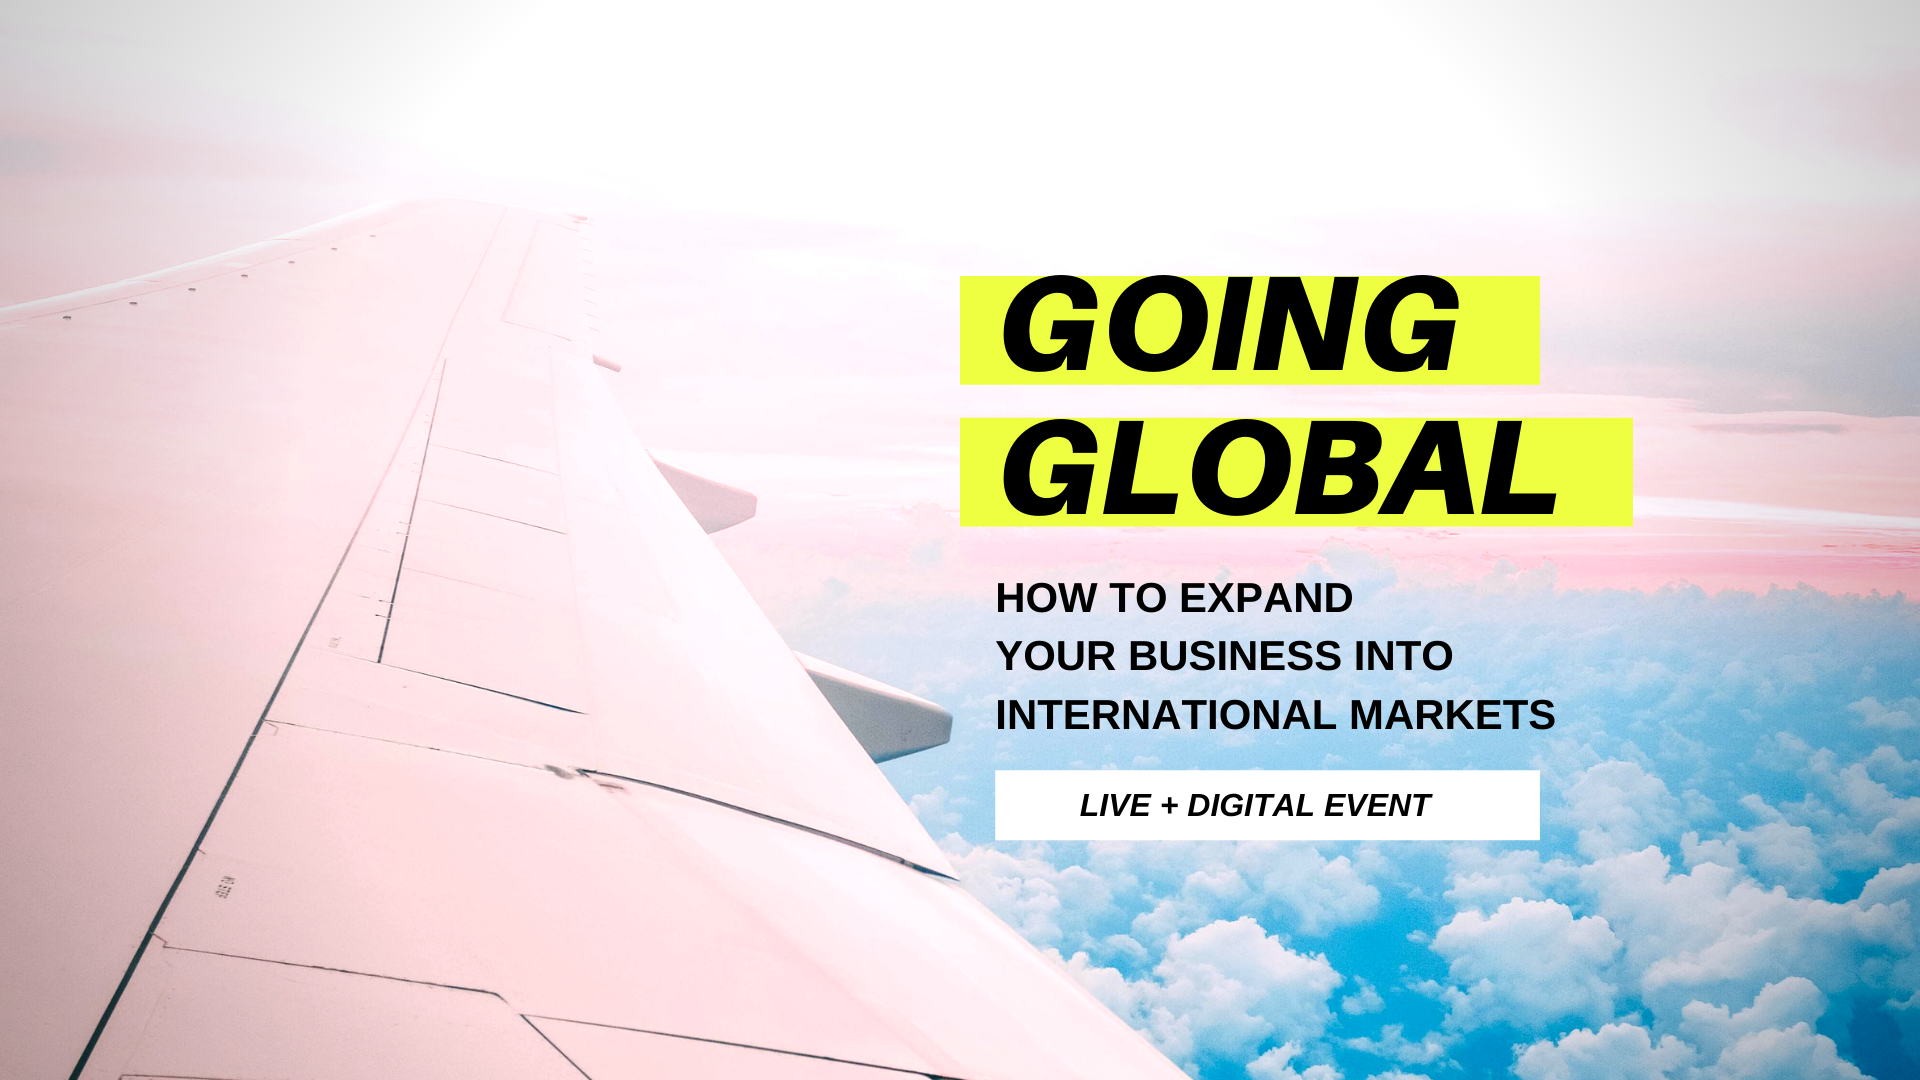 GOING GLOBAL: Expanding your business into International markets